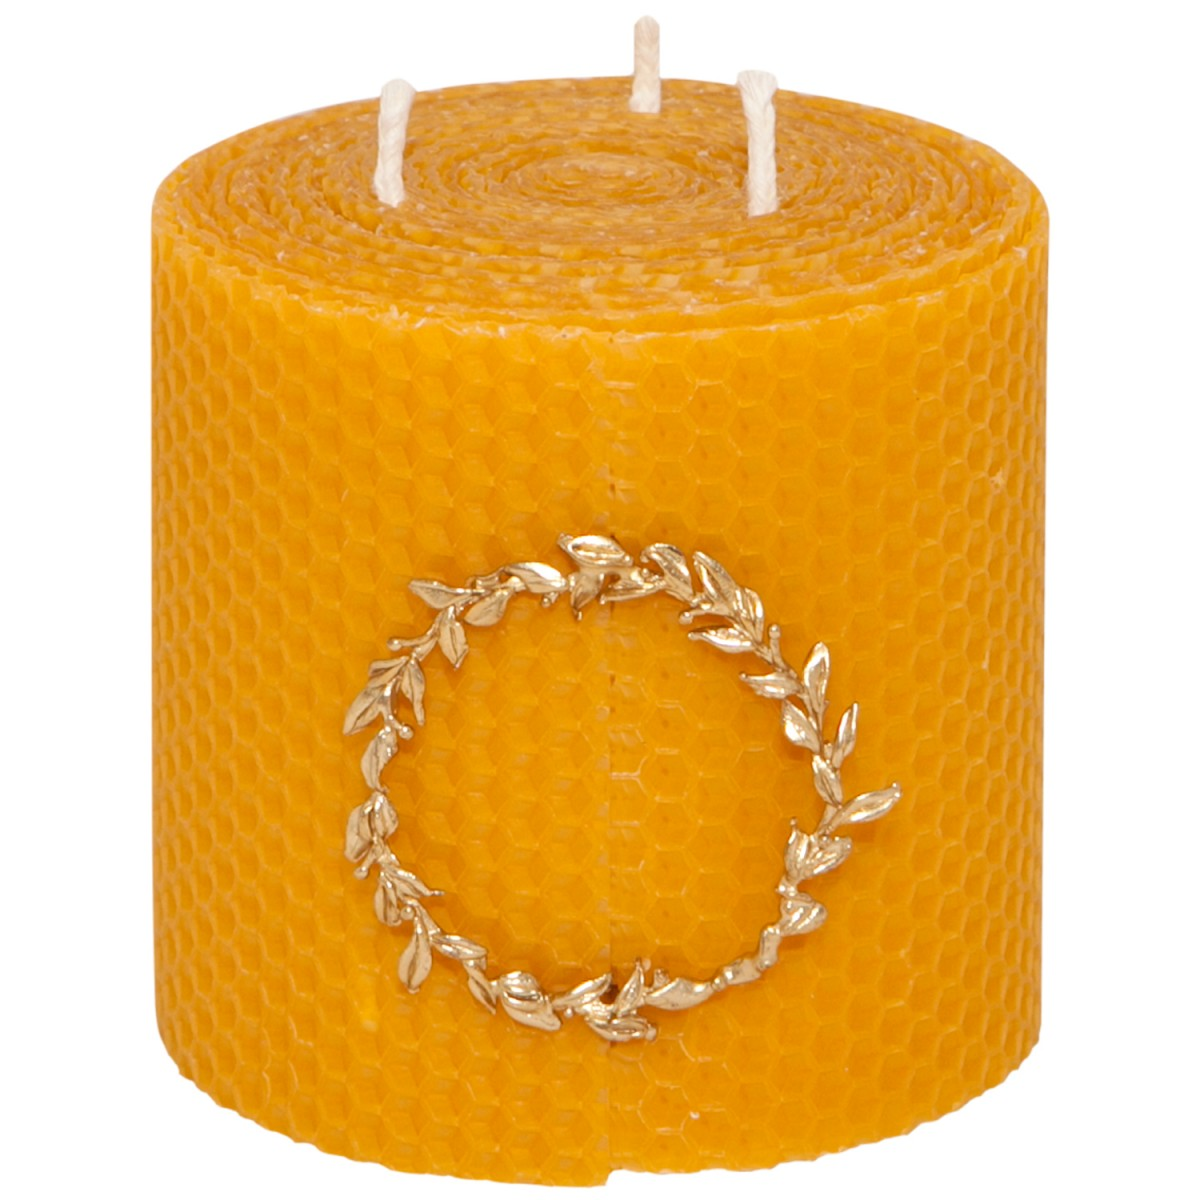 Pure Beeswax Candles -A